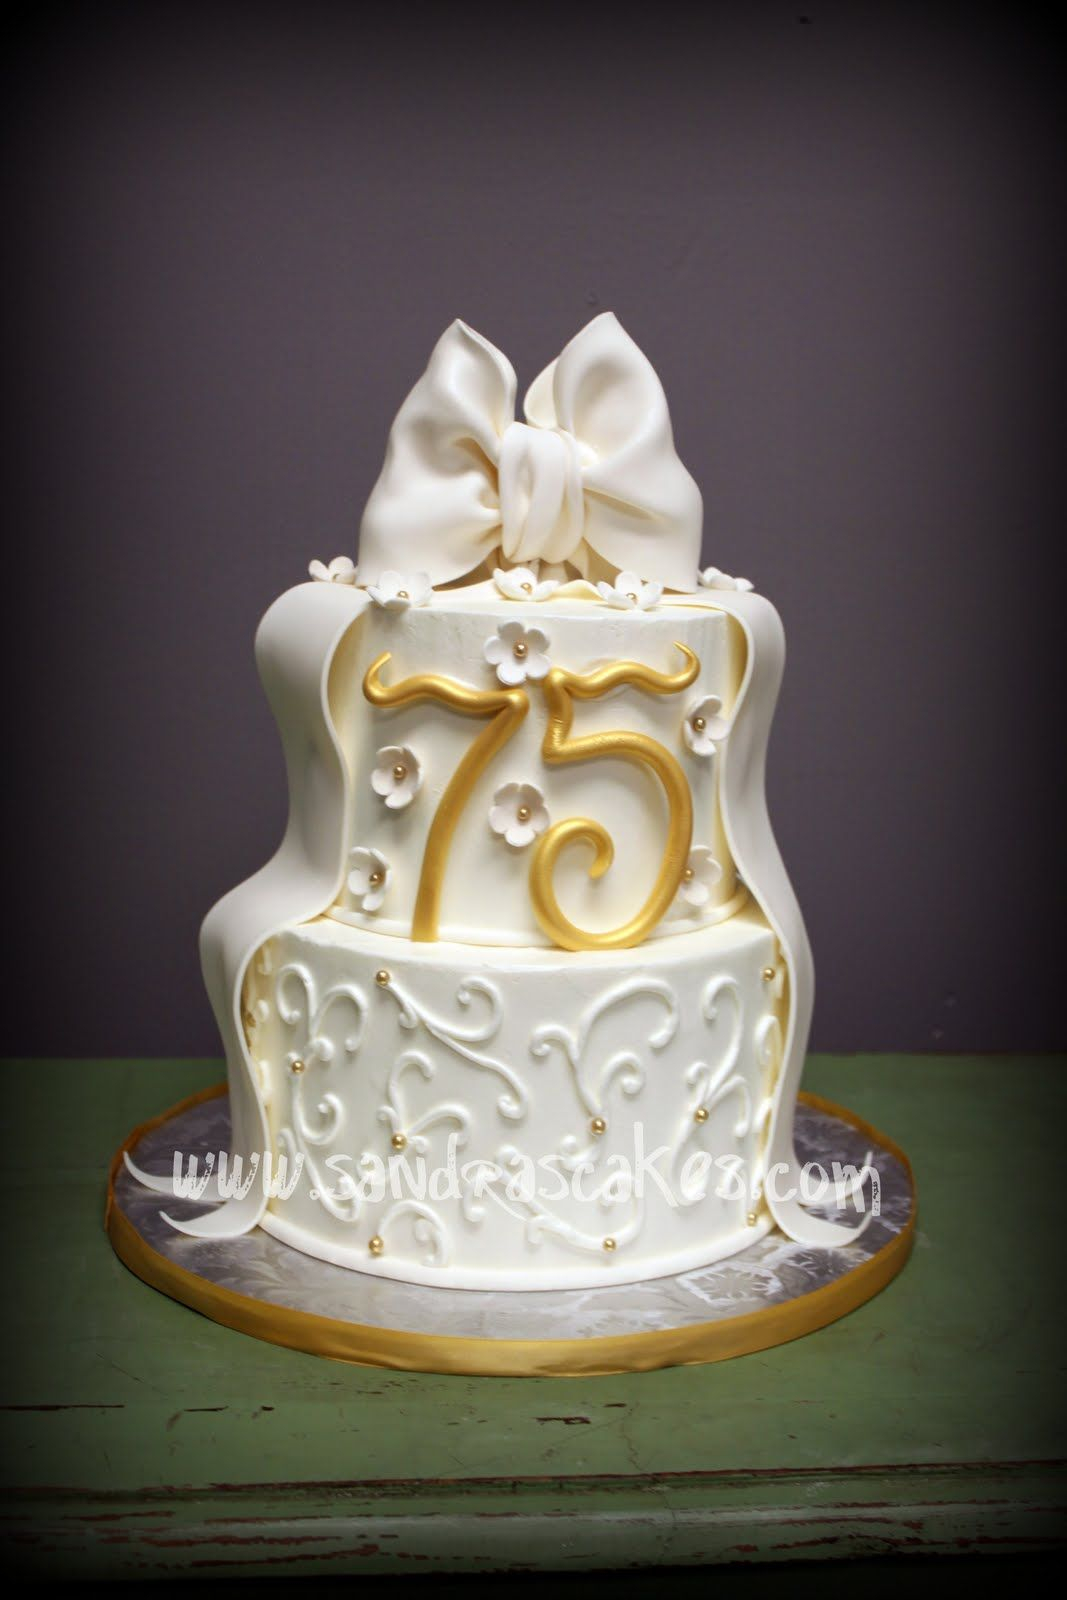 Fancy Birthday Cakes Fancy Birthday Cakes For Women Sandras Cakes Birthday Cakes For